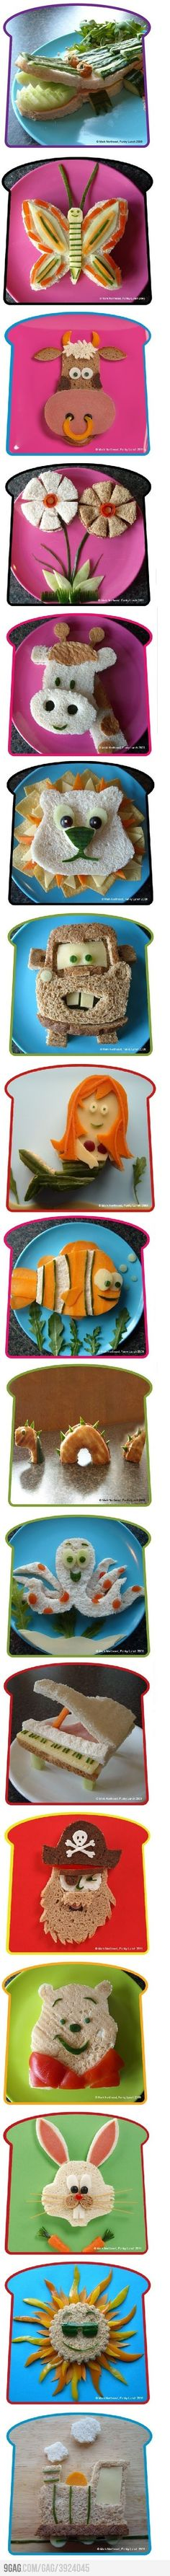 FUNKY LUNCH - check out the Funky Lunch gallery for more fun food ideas.    http://www.funkylunch.com/gallery.htm